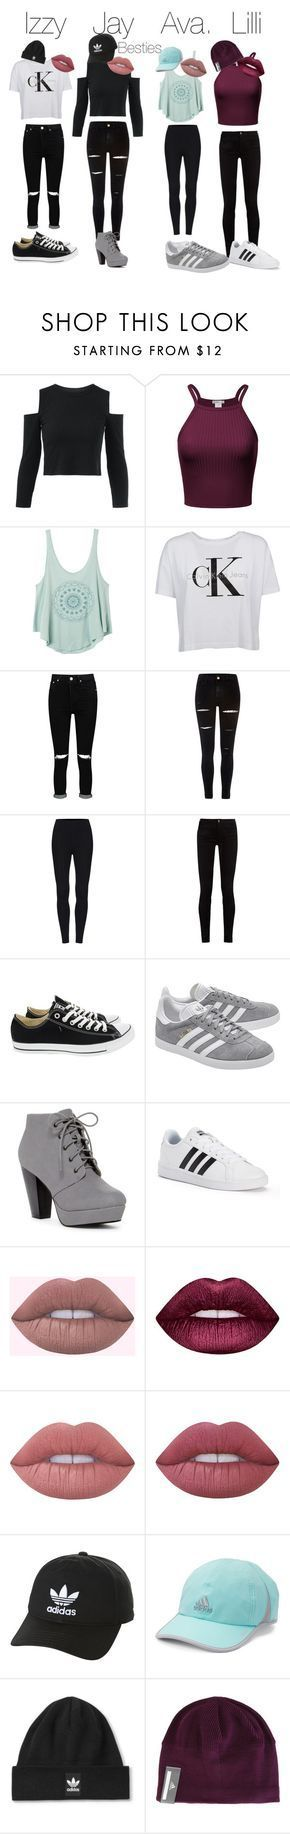 Squad by isabella2845 ❤ liked on Polyvore featuring RVCA, Calvin Klein, Boohoo, River Island, Gucci, Converse, adidas Originals, adidas, Lime Crime and Topshop #adidasclothes